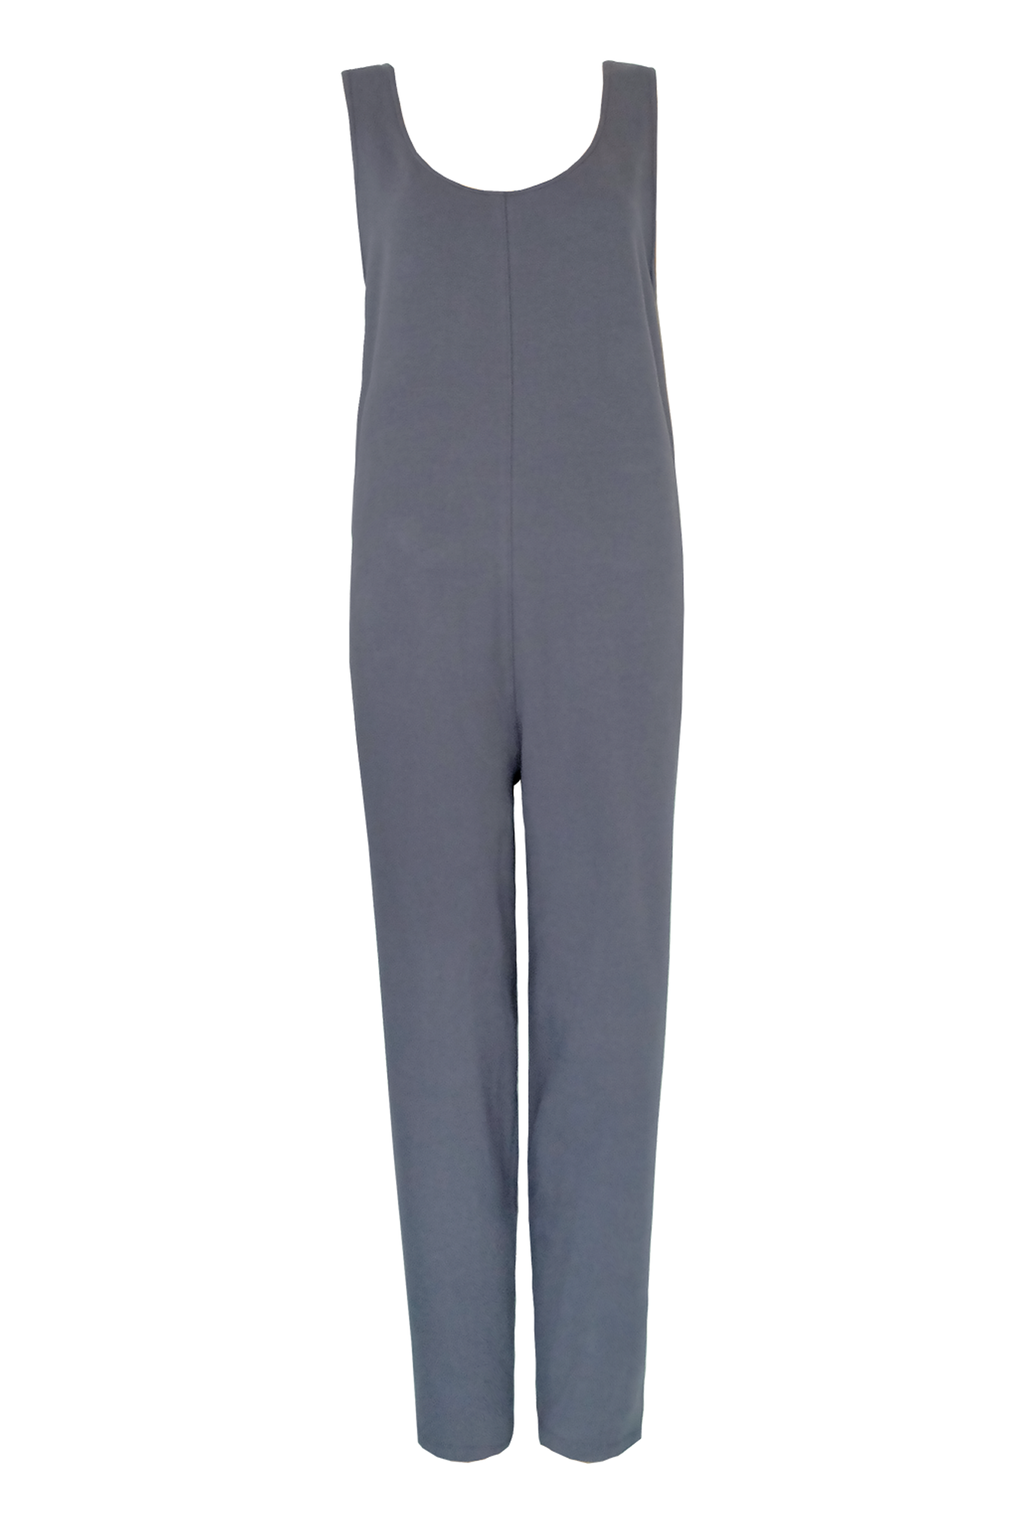 French Terry Jumpsuit - Elephant